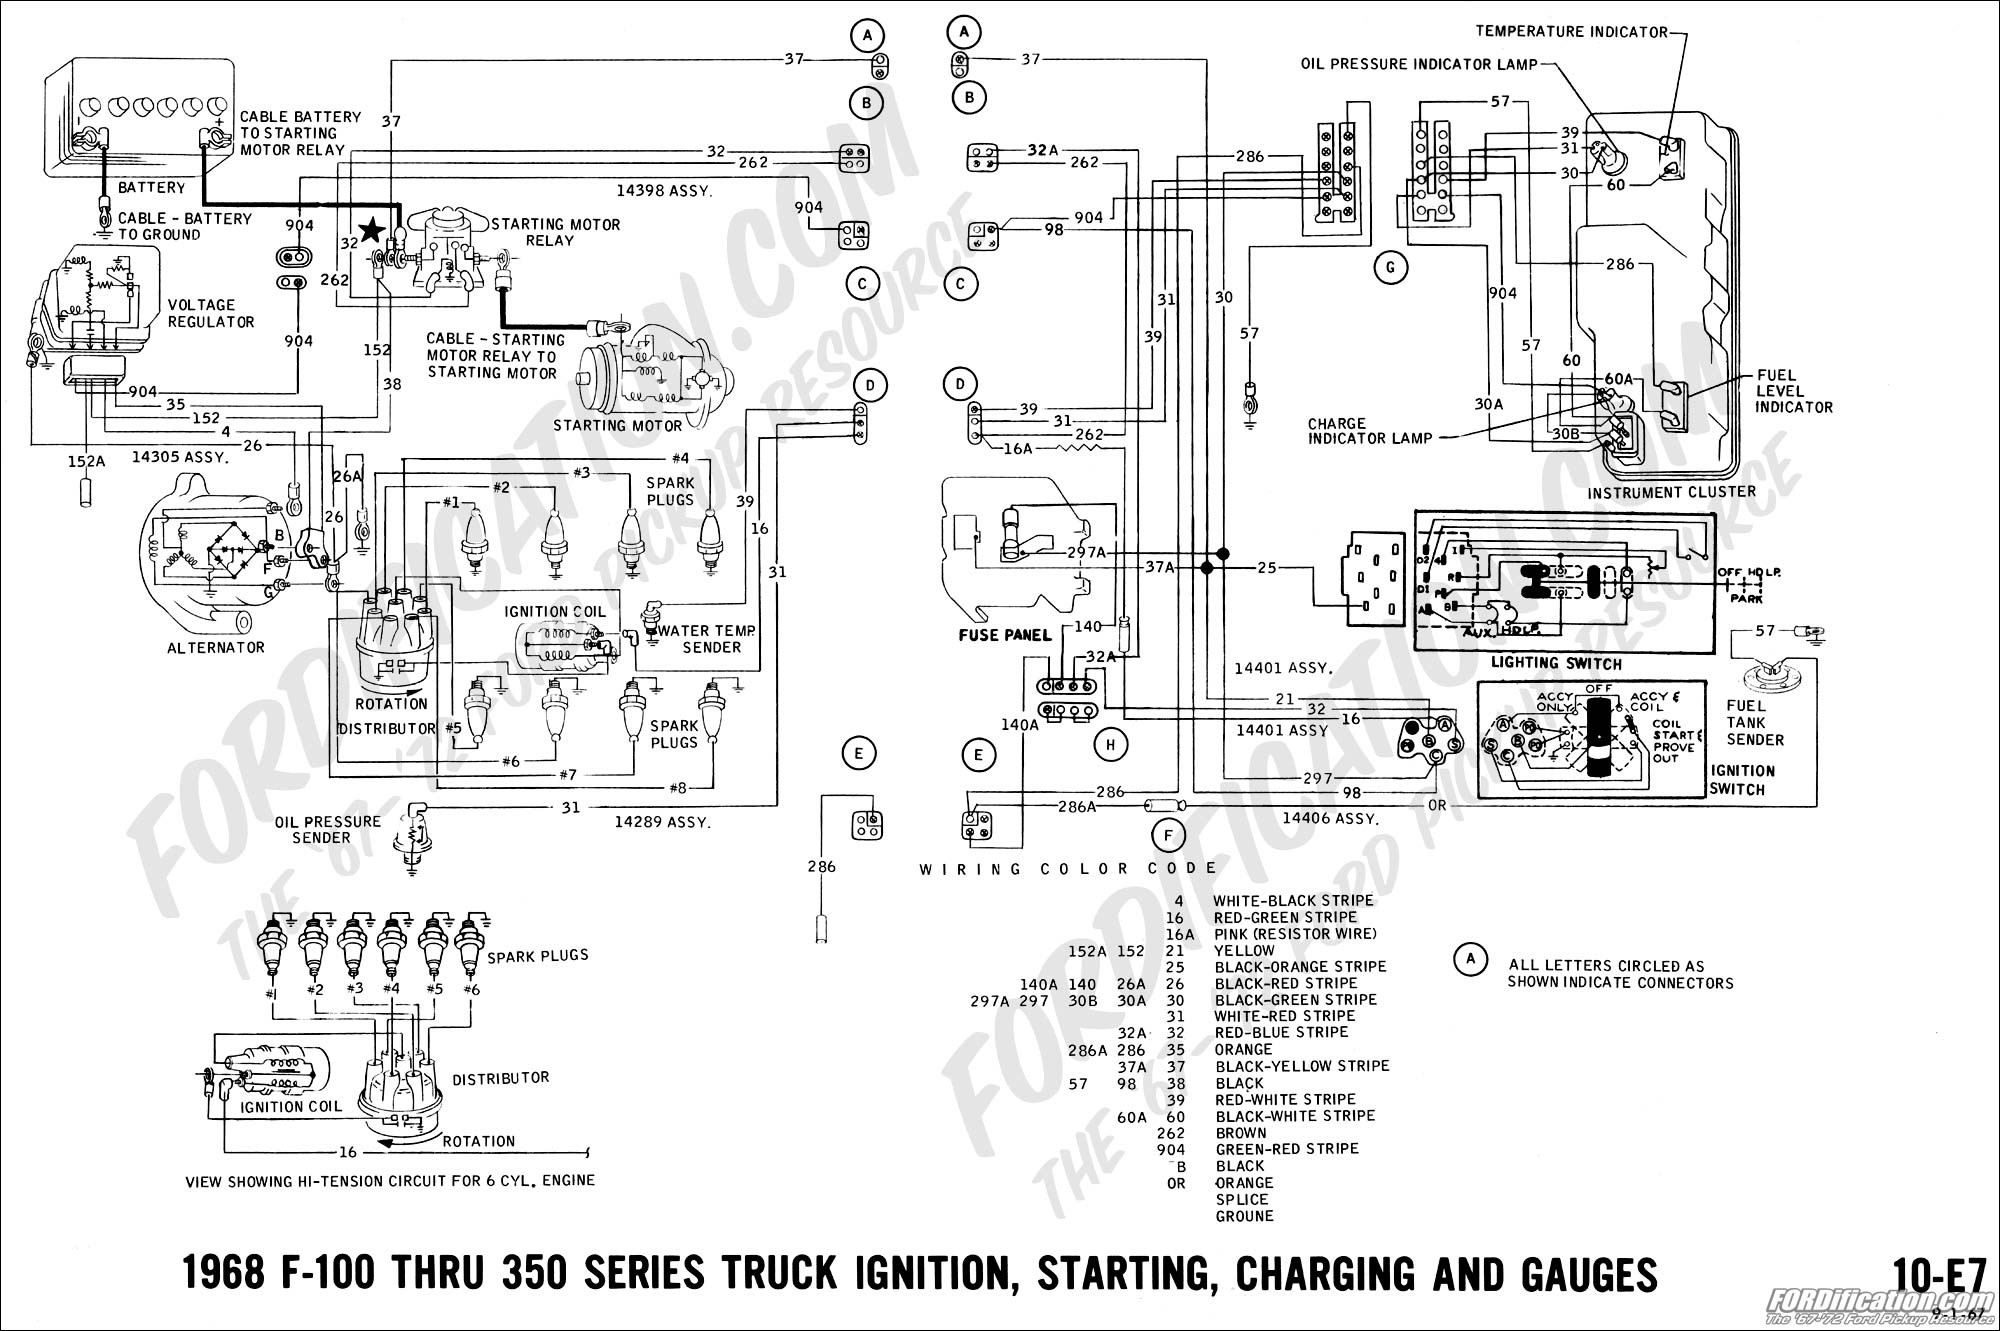 1995 Ford Ranger Wiring Diagram And Schematic 2001 Wiper Motor Library Taurus Engine Mustang Also Meke Of